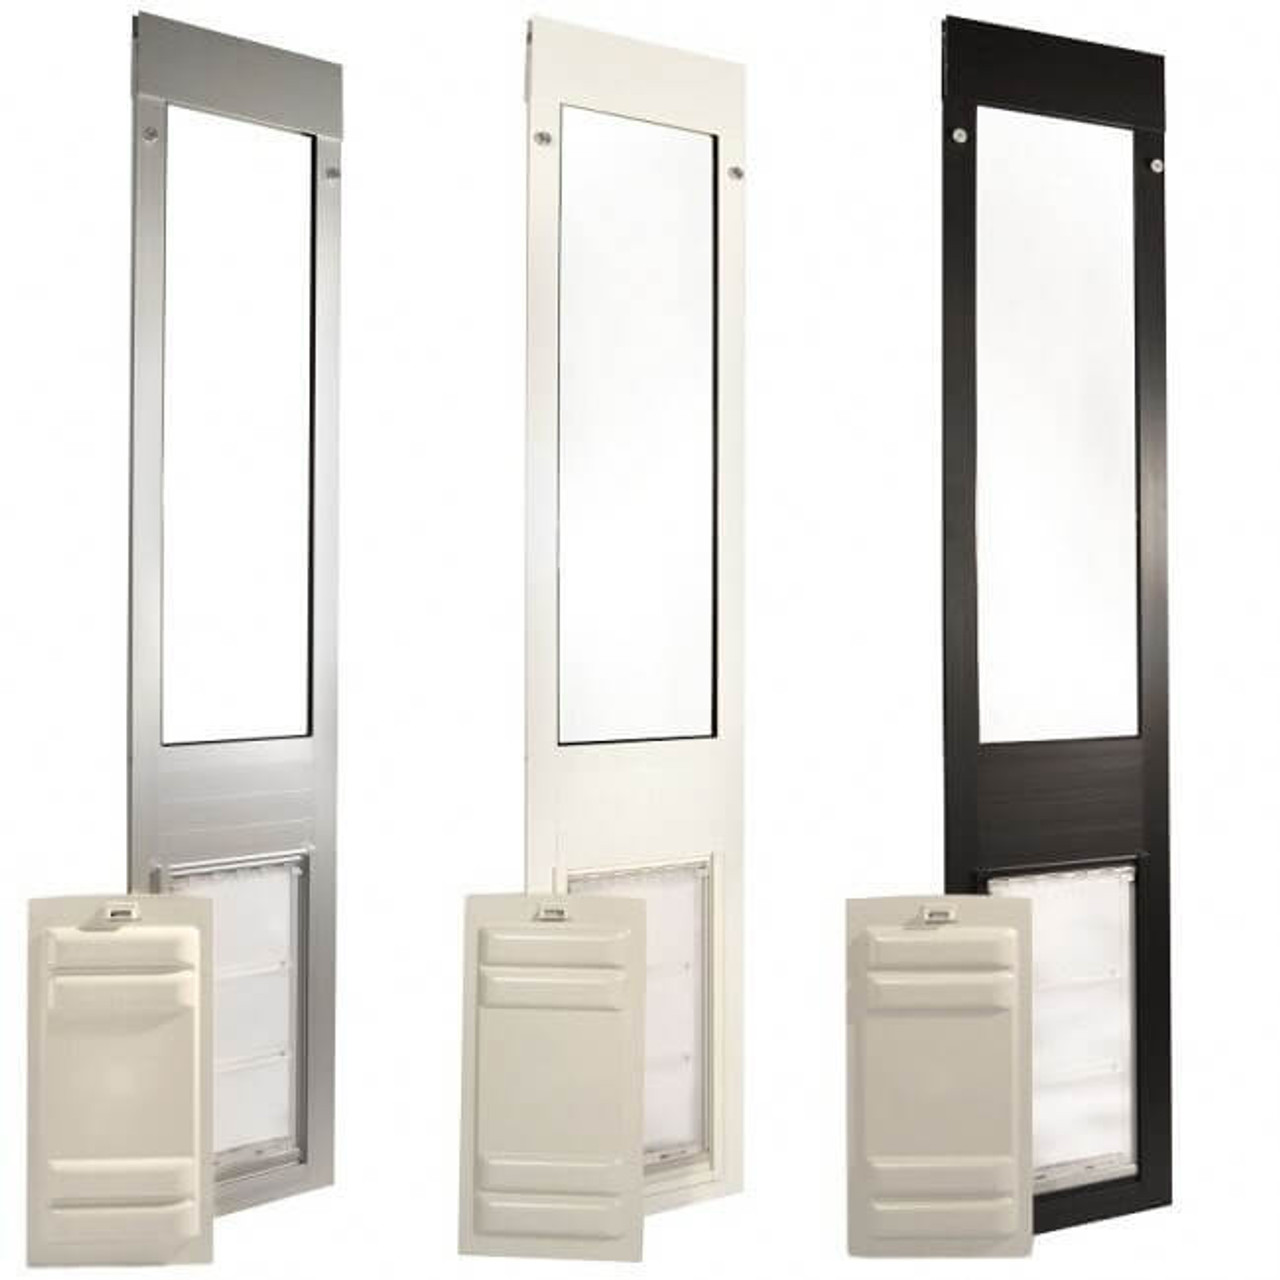 Thermo Panel 3e Endura Flap pet doors come in satin (brushed aluminum) white and bronze (very dark brown) colors